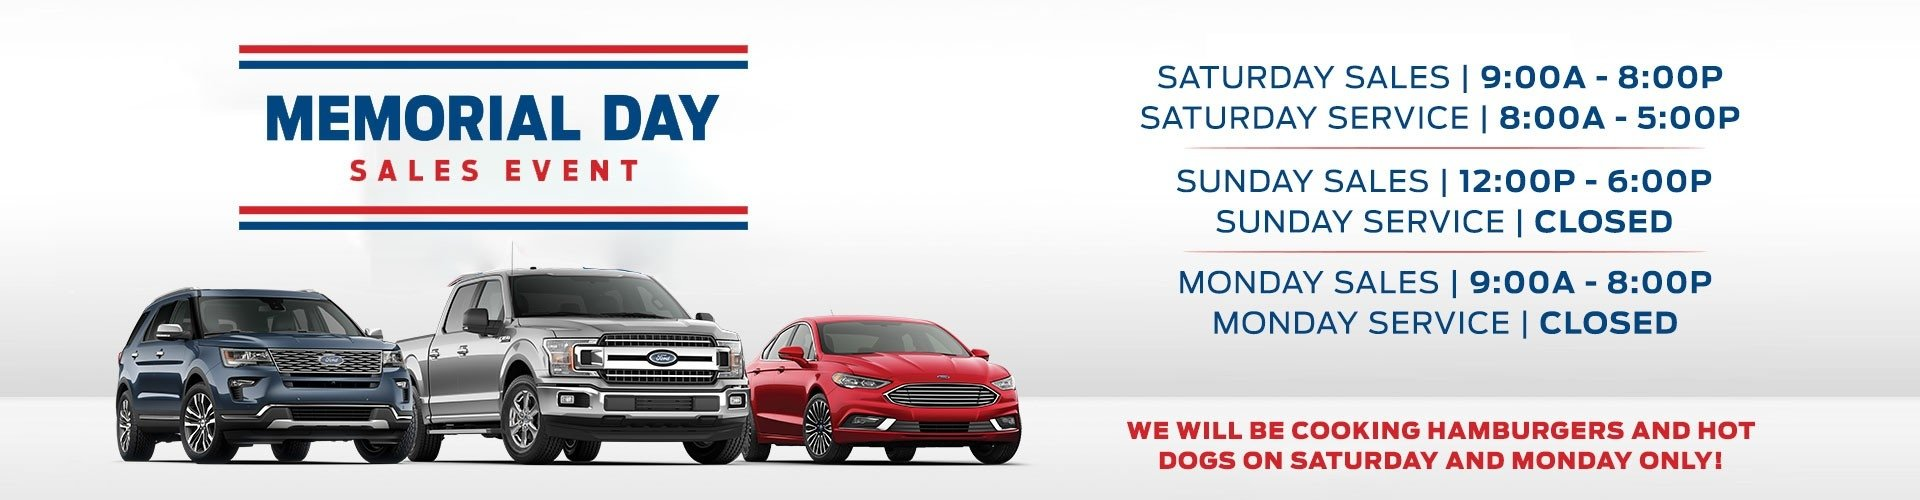 memorial day sales event with weekend business hours